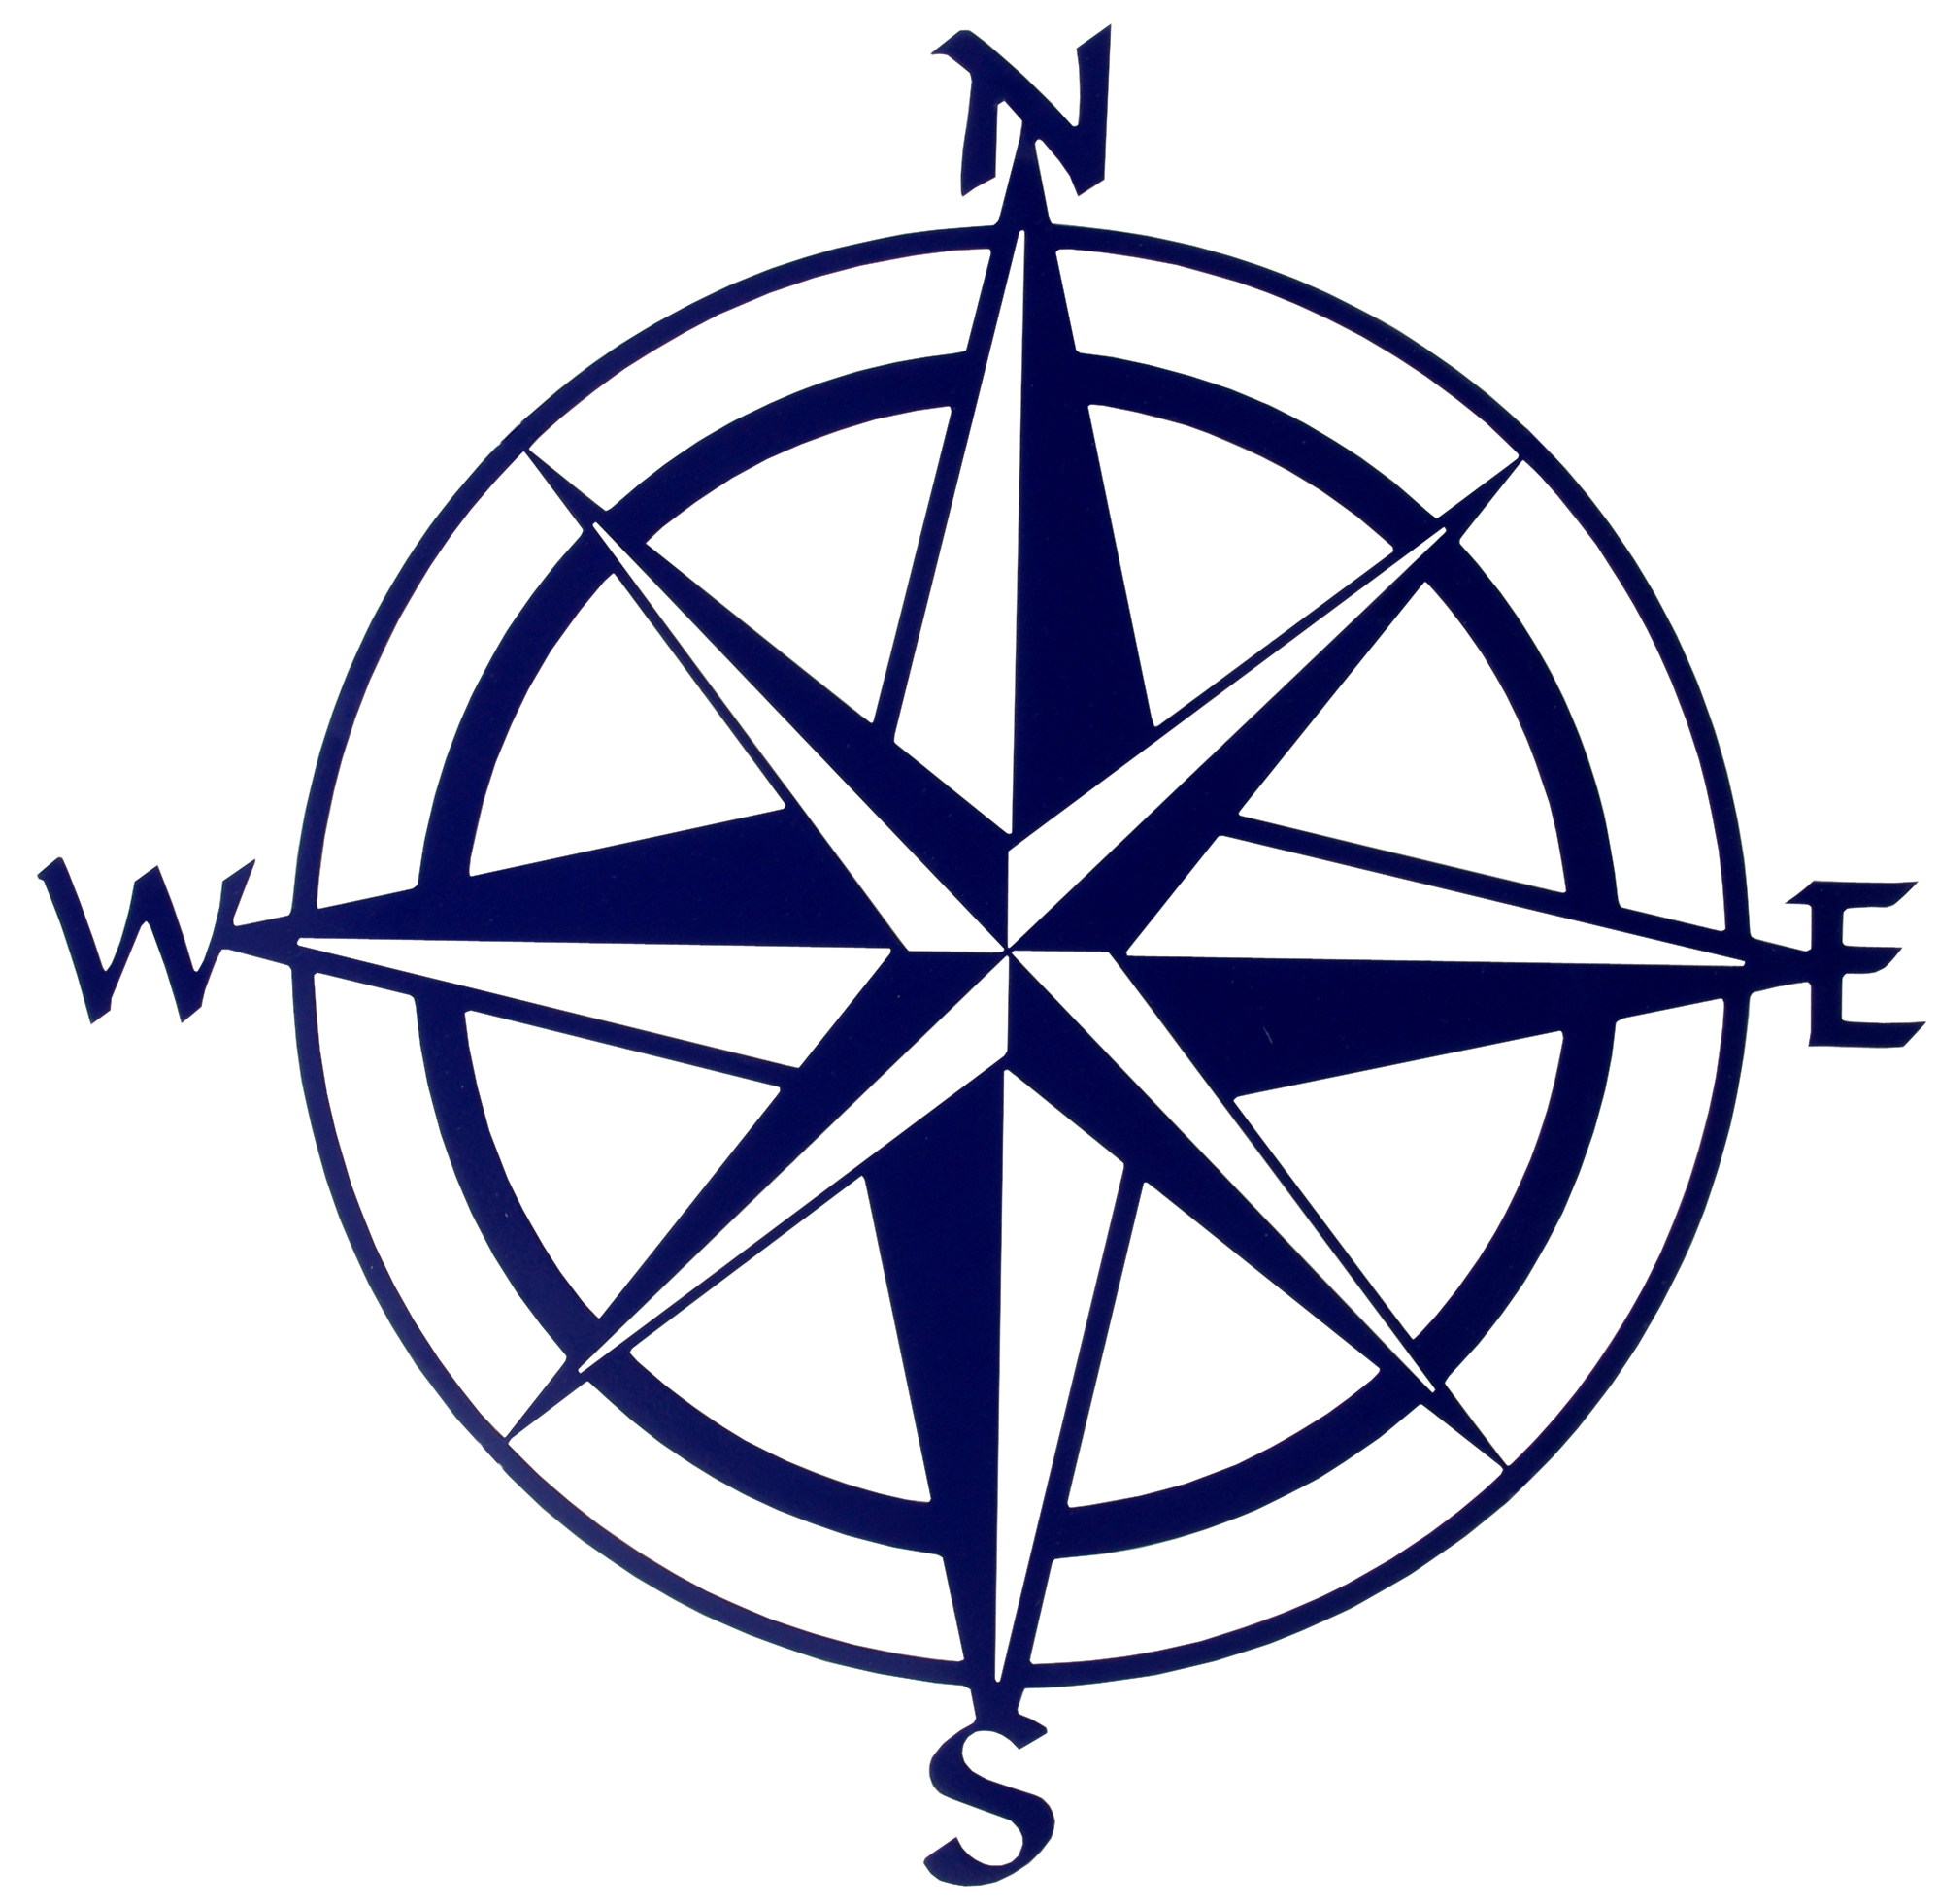 Images Of Compass Rose - Clipart Library-Images Of Compass Rose - Clipart library-14